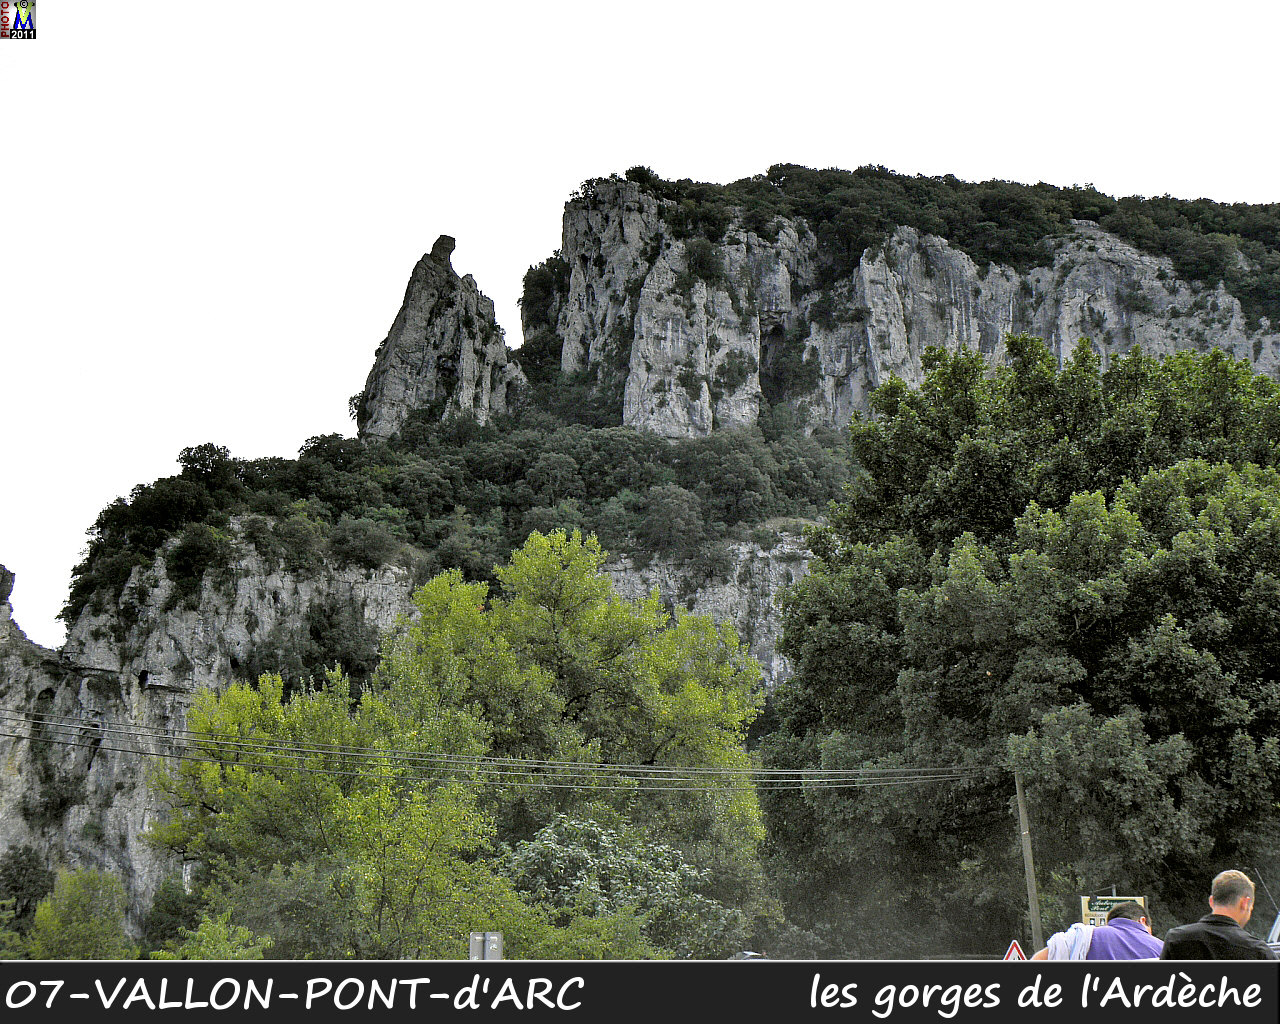 07VALLON-PONT-ARC_gorges_108.jpg